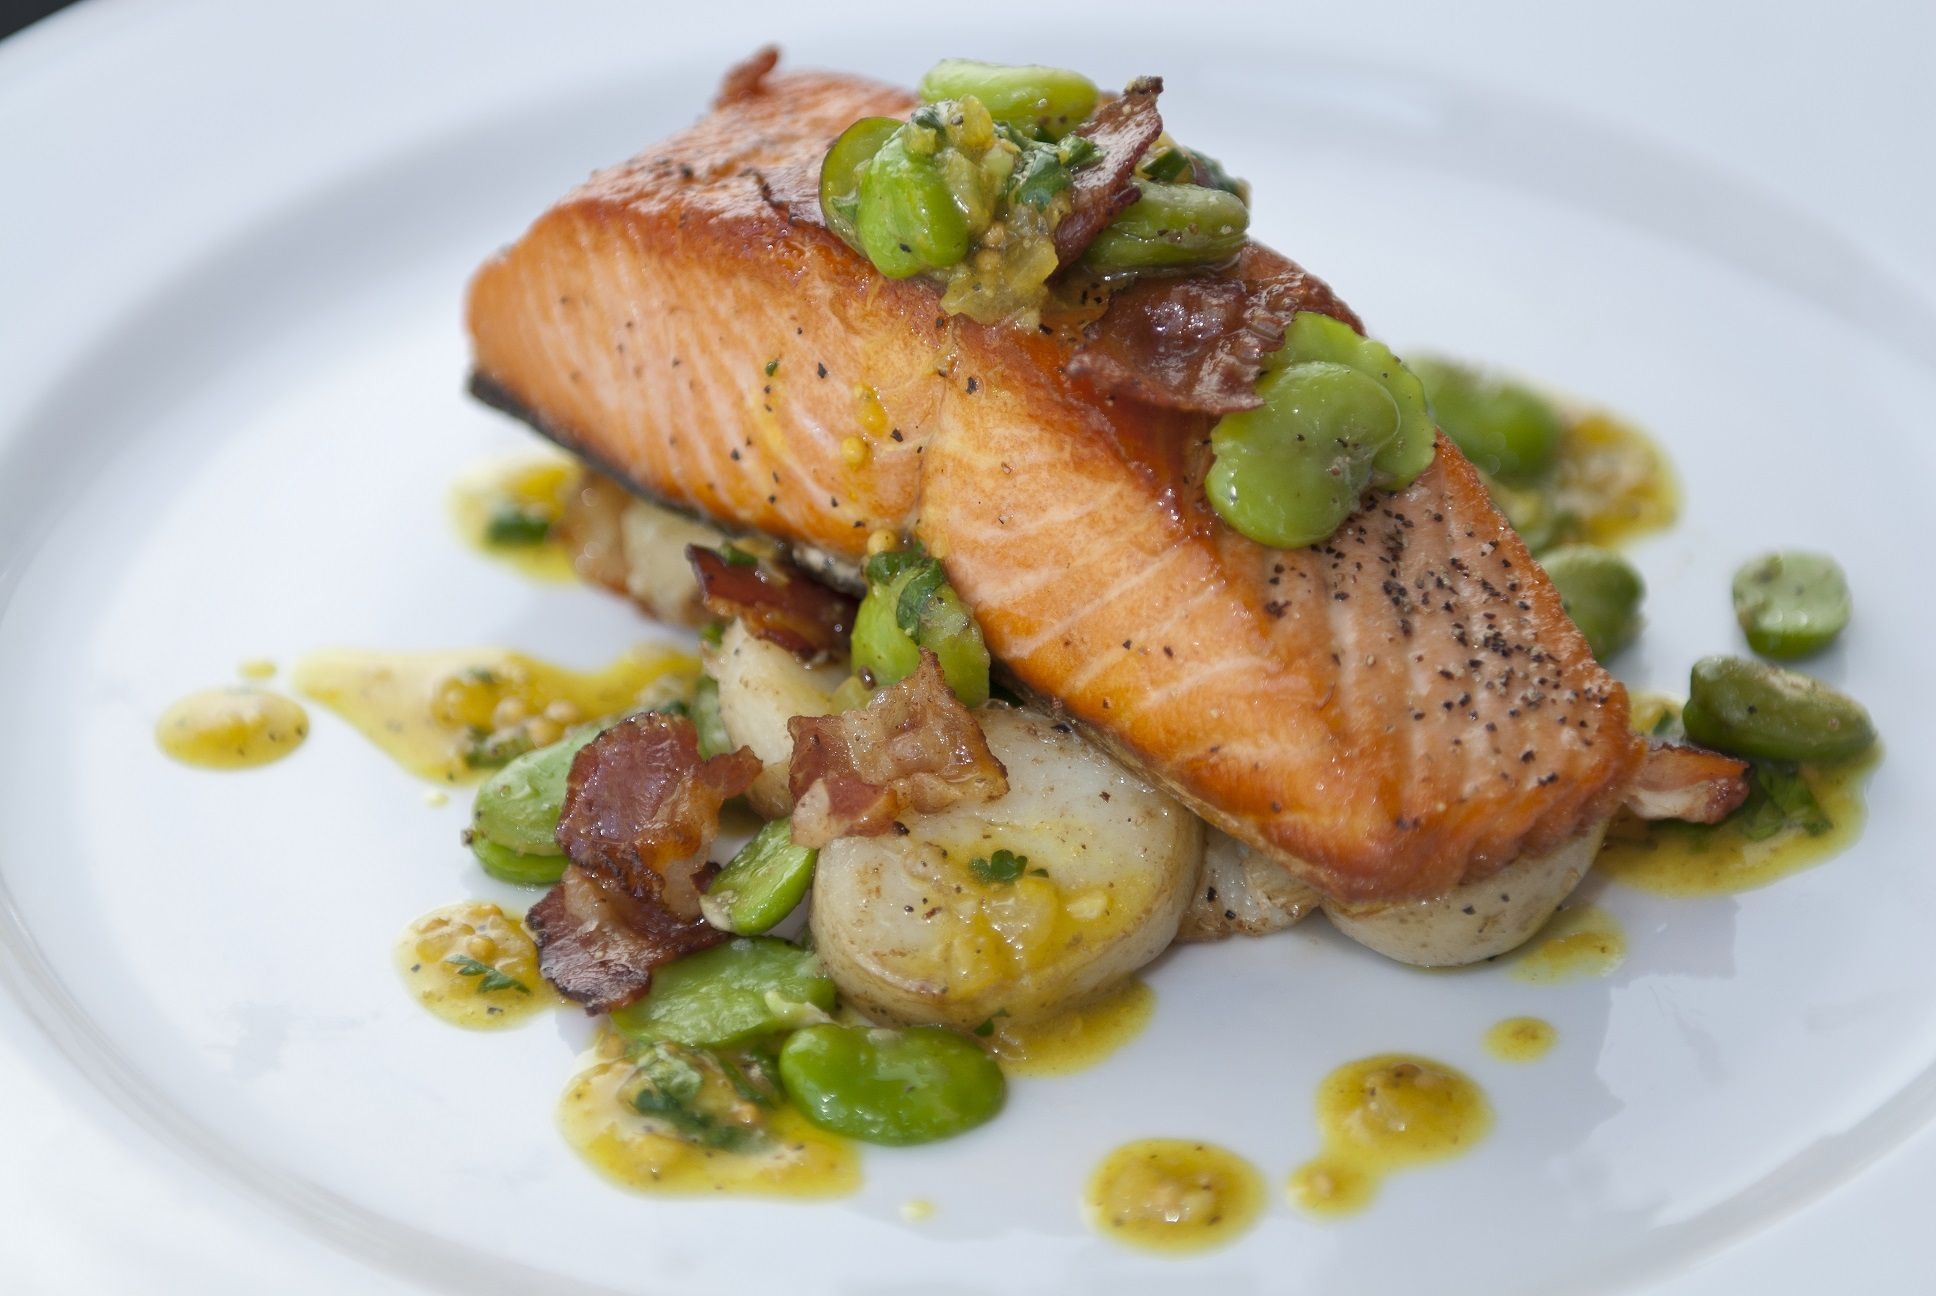 panfried salmon - Google Search